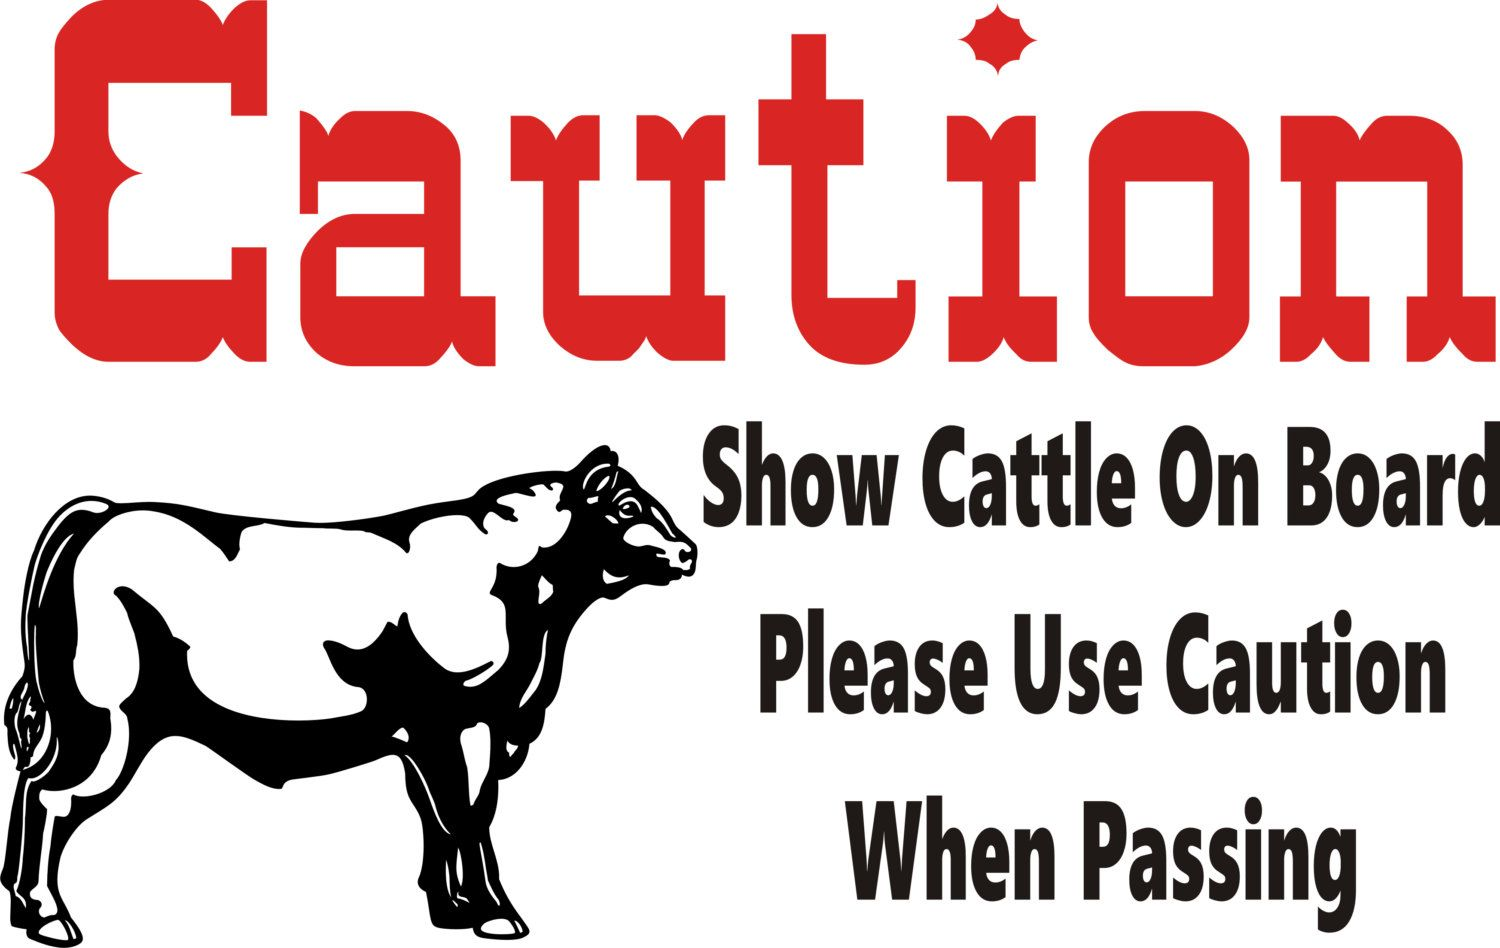 Caution Trailer Decal Show Cattle On Board Transport Livestock Pass With Caution By Wildhorsedesign2 On Etsy Show Cattle Cattle Show Steers